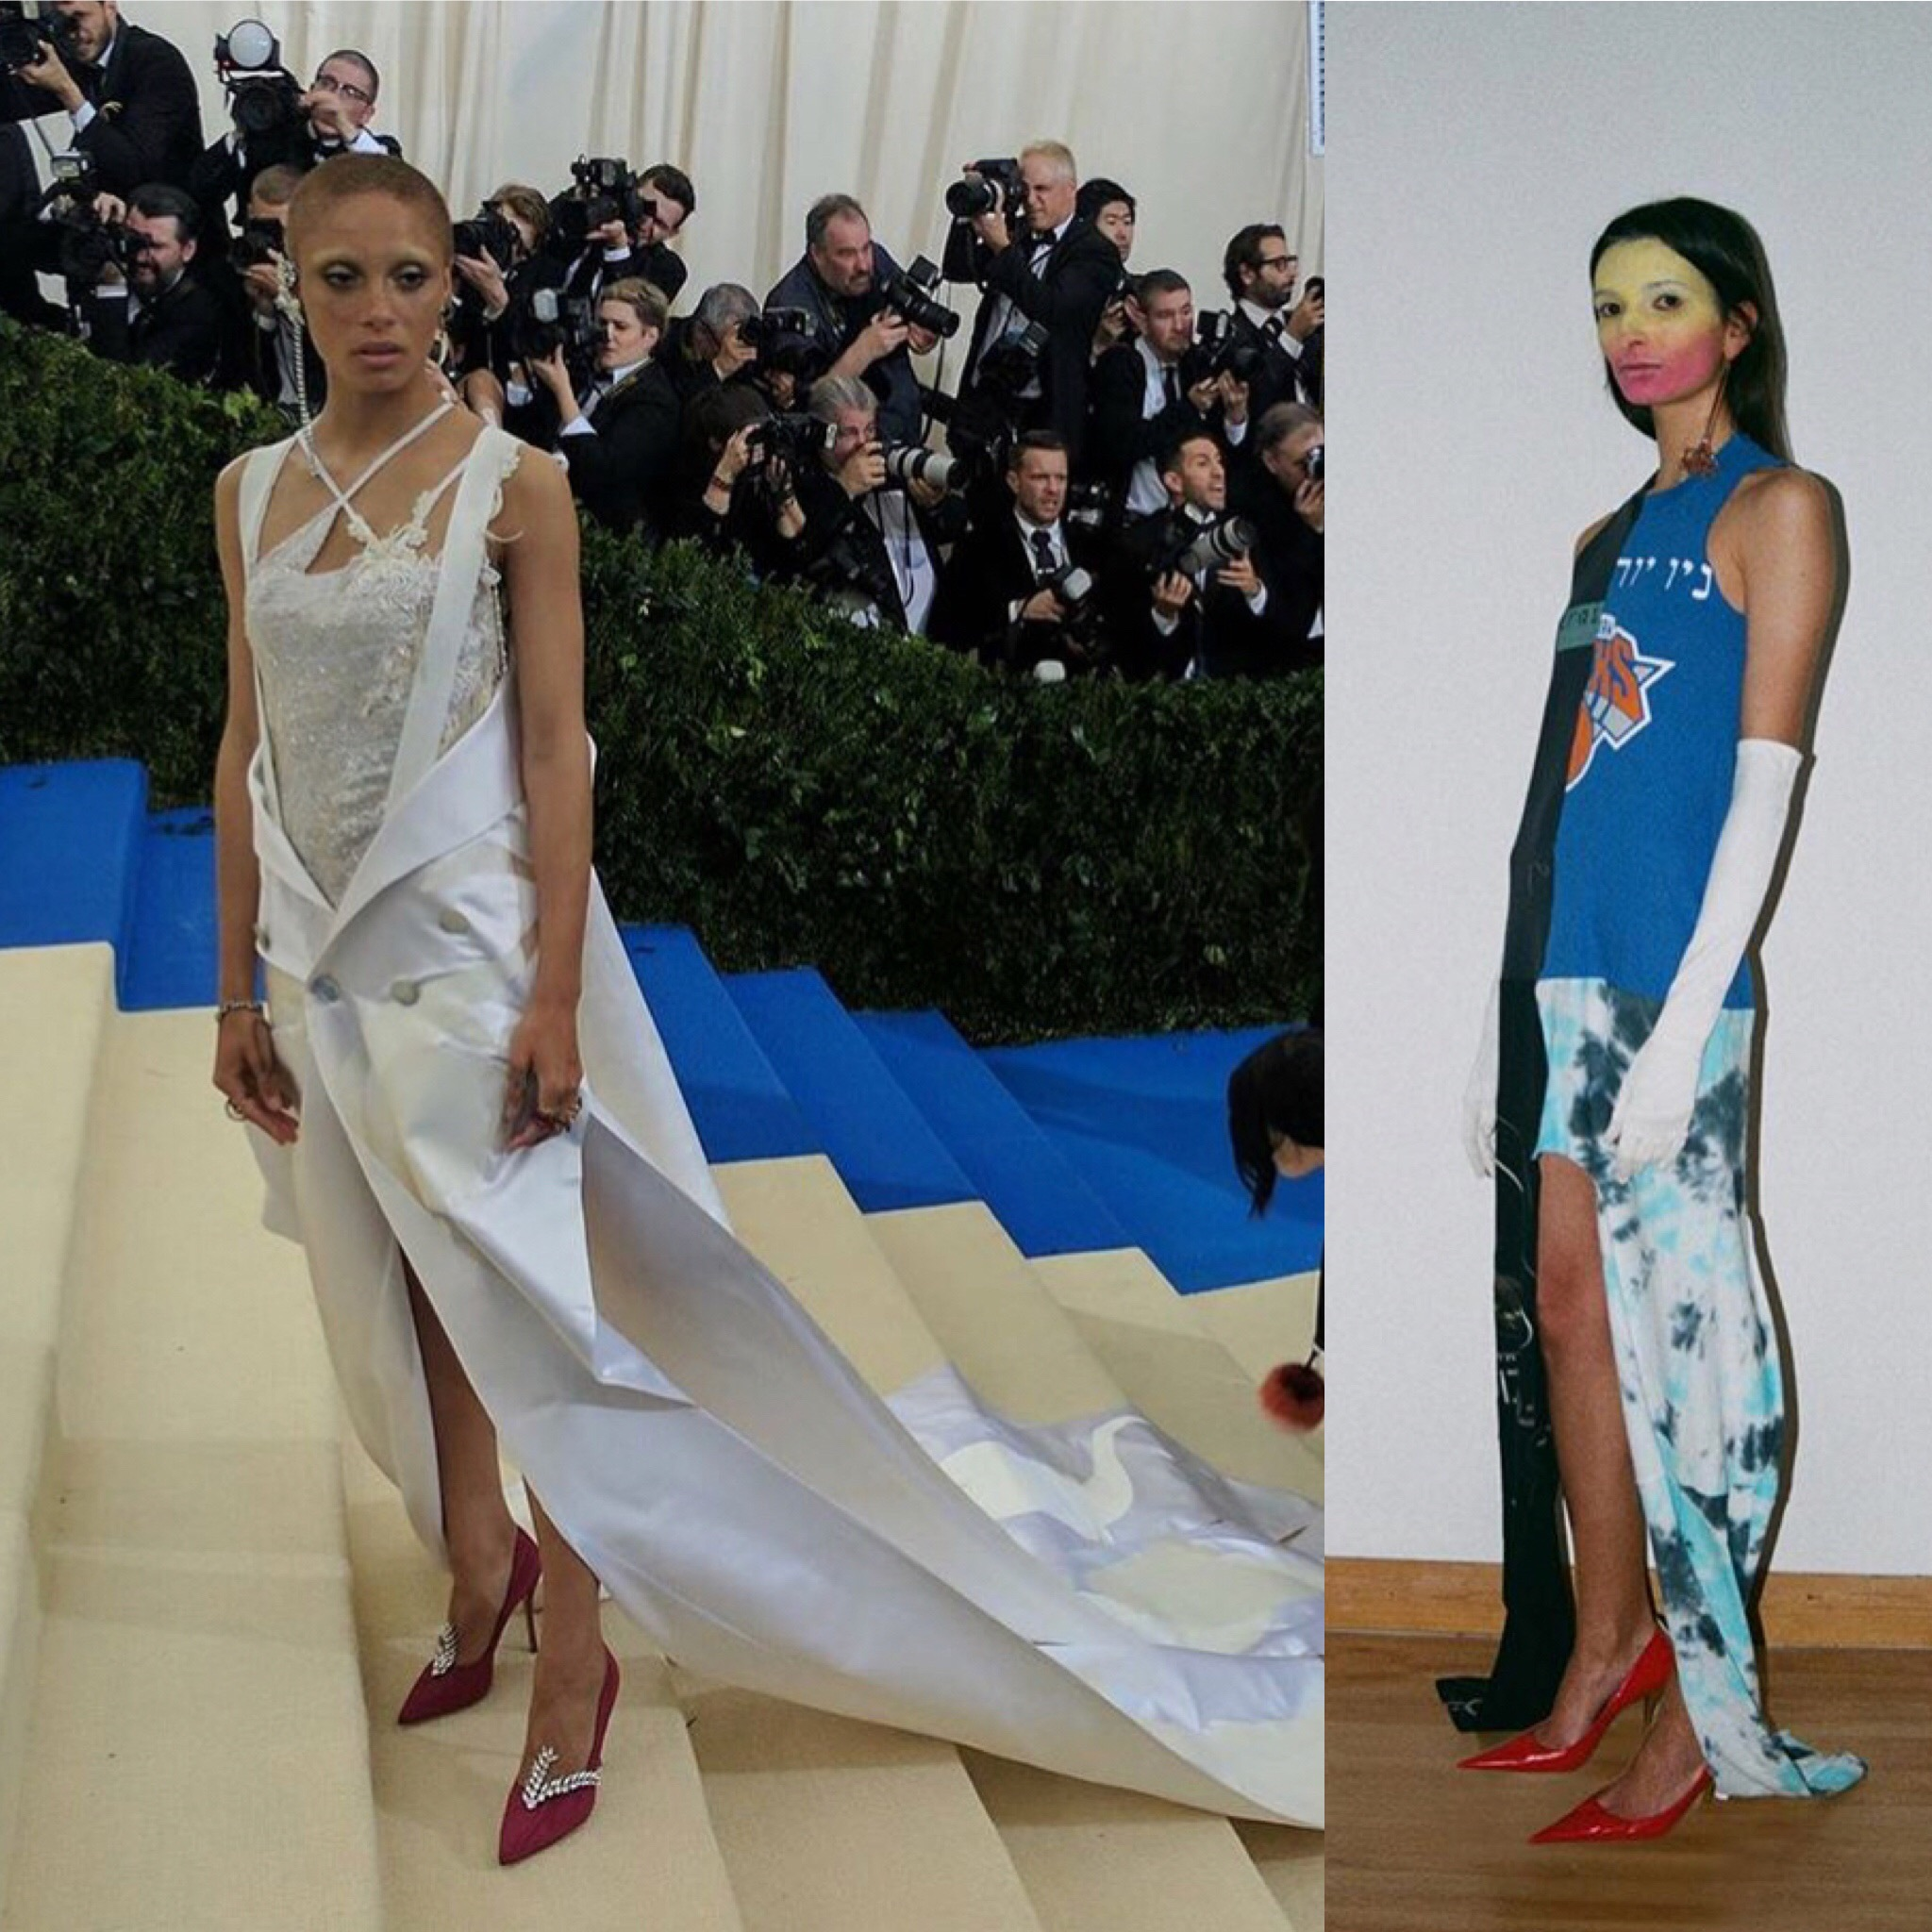 Adwoa Aboah wearing Conner's designs at the MET Gala.  A piece from his exclusive collection at     Browns.